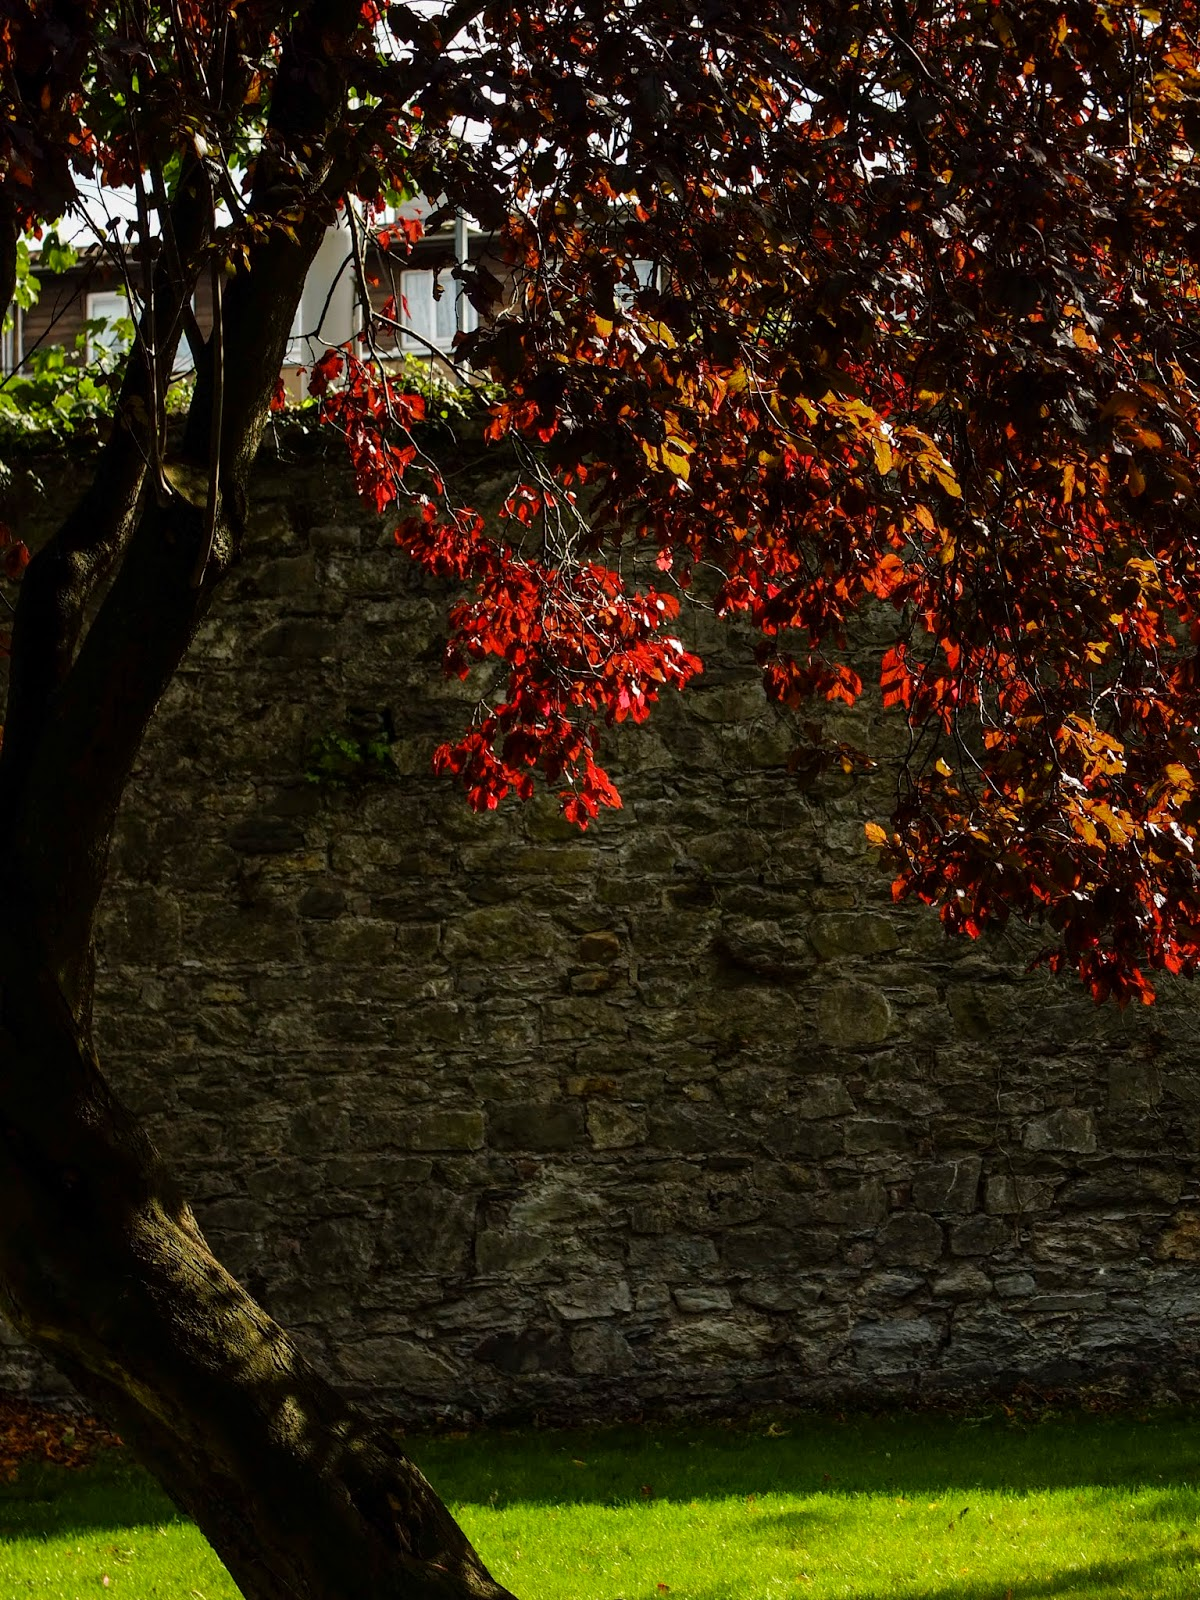 A red maple tree in sunlight on green grass with a stone wall behind it.